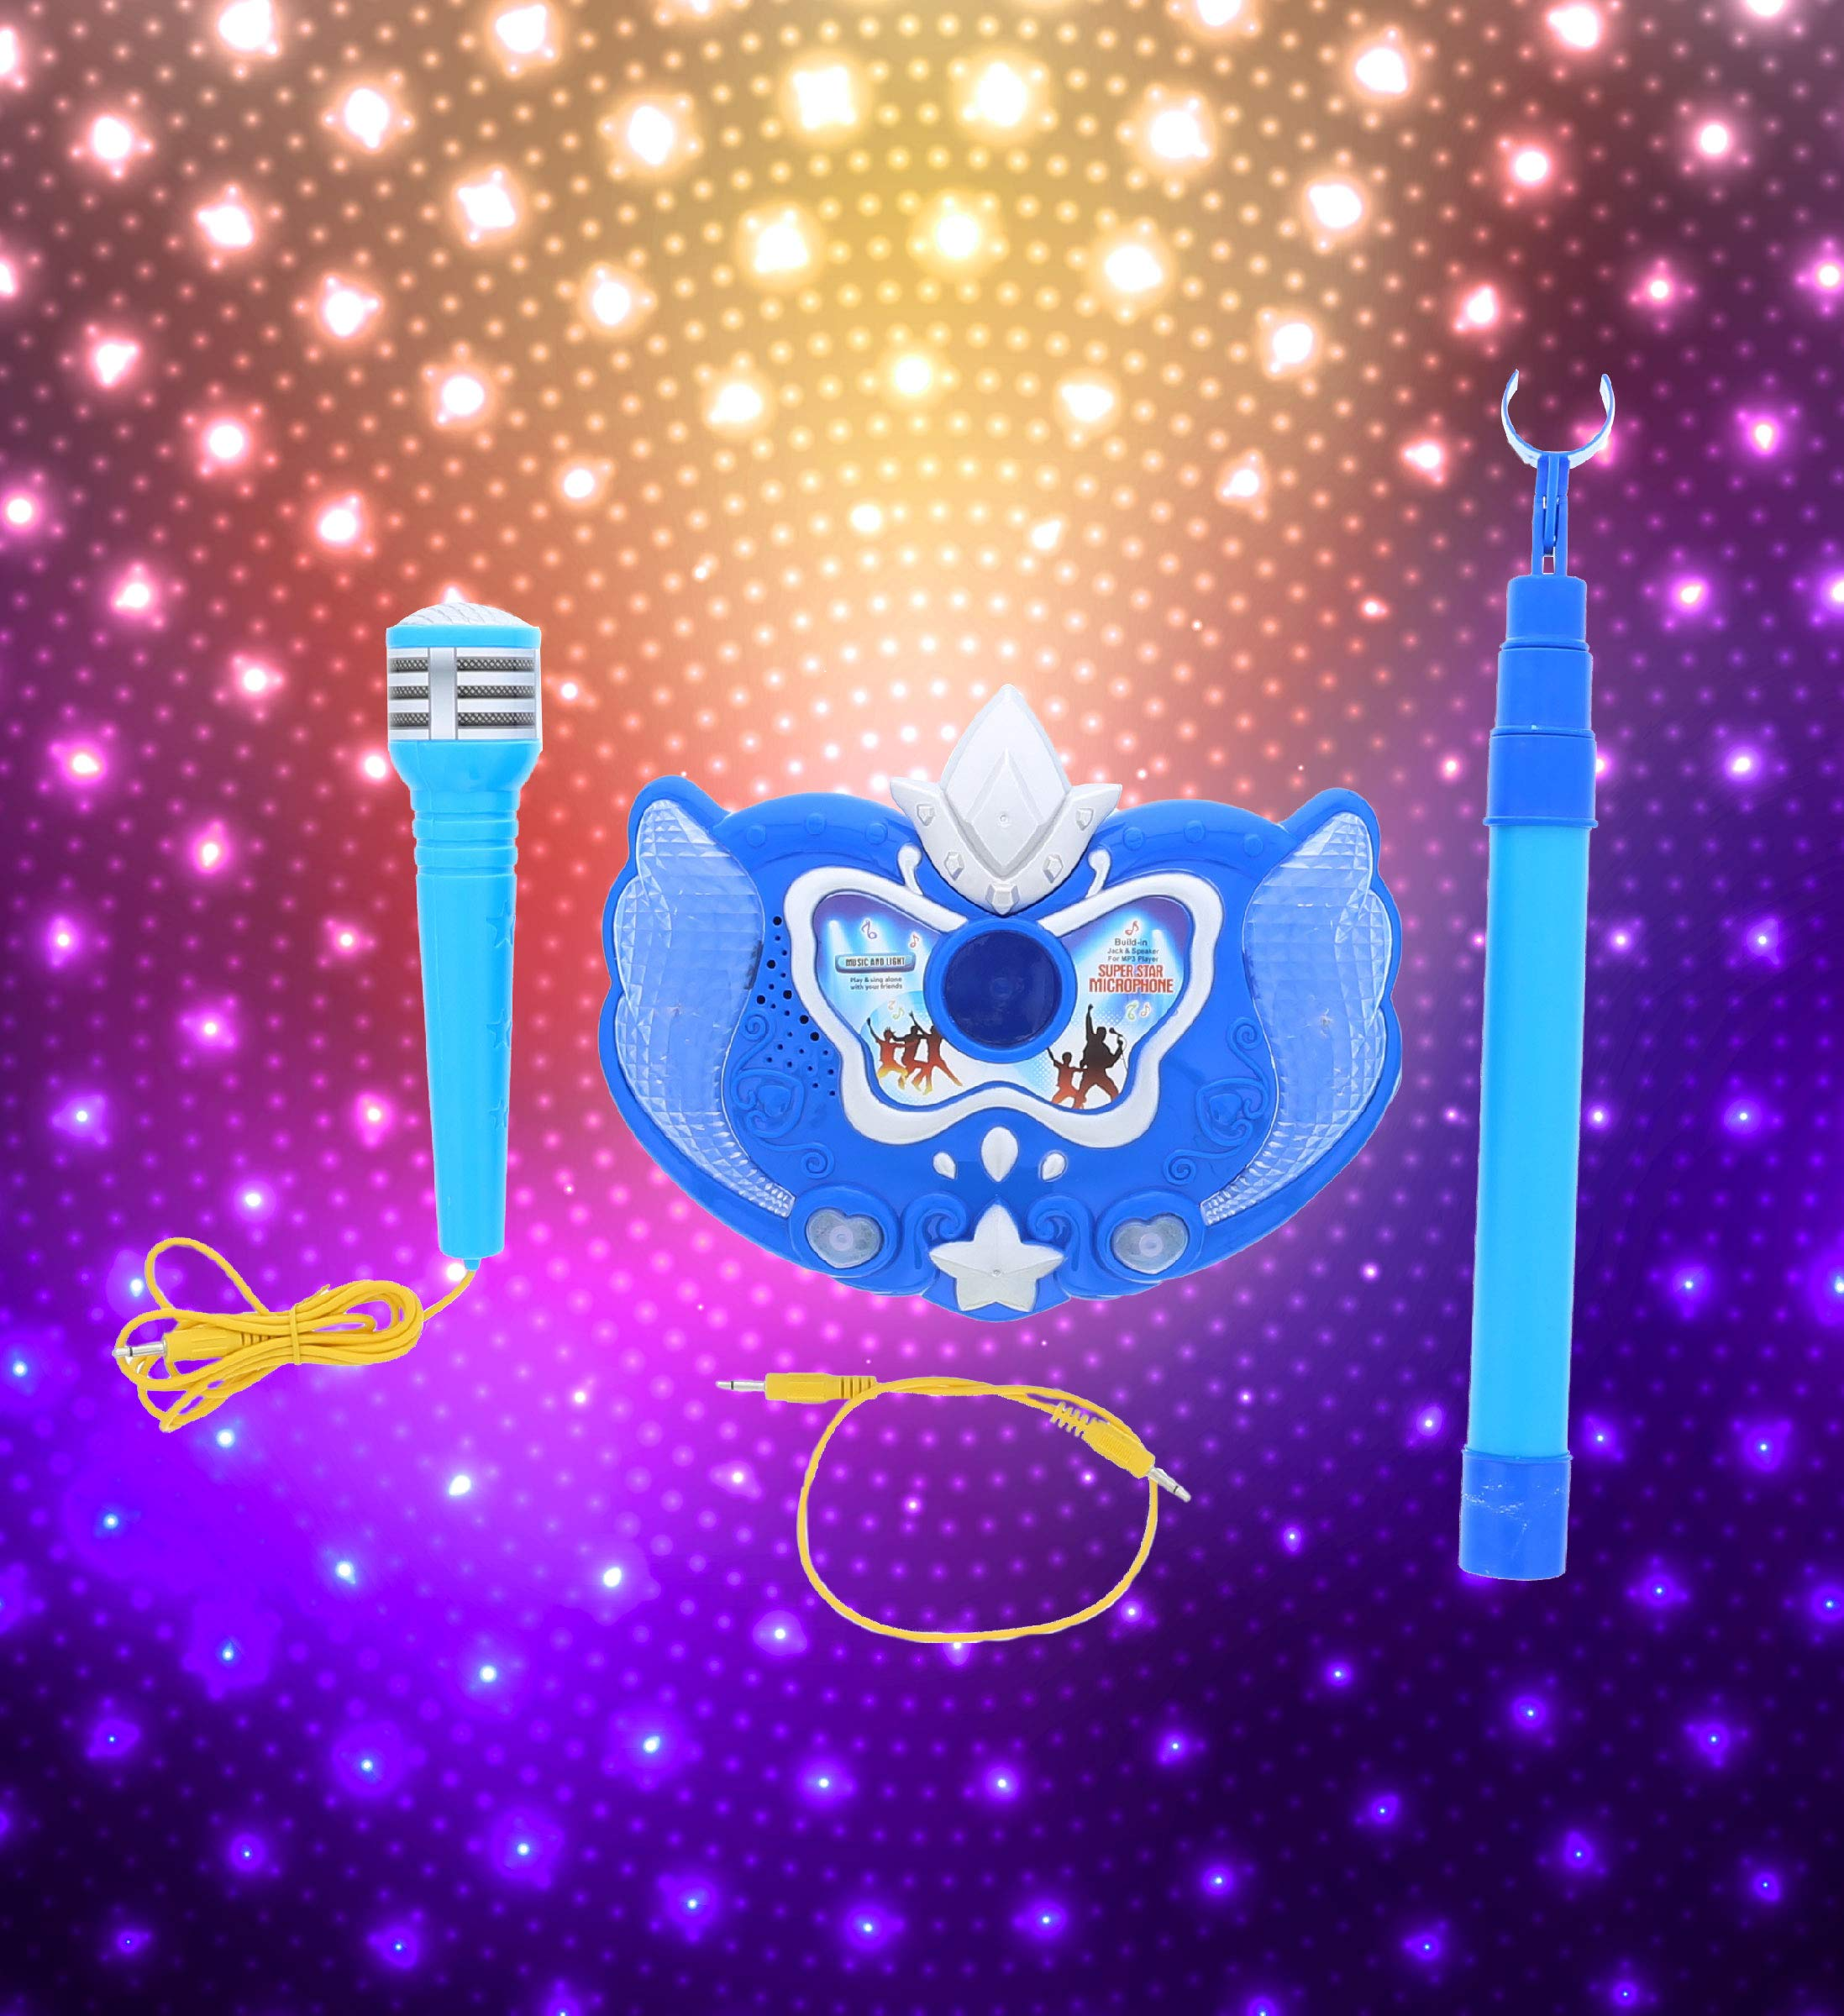 Mozlly Blue Light Up Karaoke Machine with Toy Microphone & Adjustable Stand, Connect to MP3 Player AUX Smart Phones for Solo Singing Parties Sing-A-Along Built in Speaker Flashing Lights for Kids by Mozlly (Image #5)